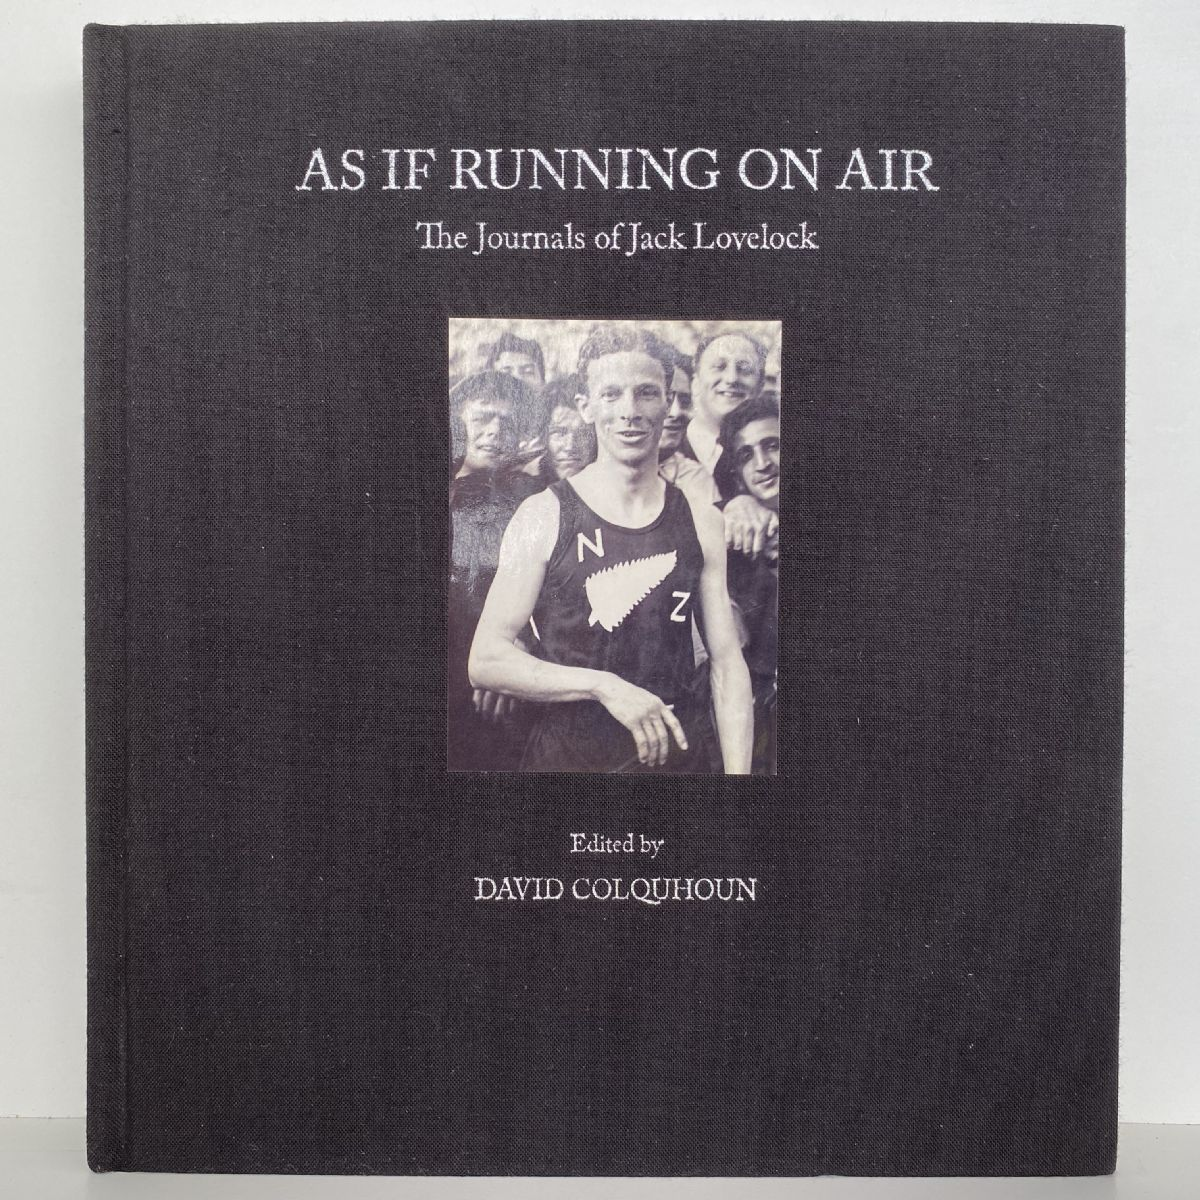 AS IF RUNNING ON AIR: The Journals of Jack Lovelock